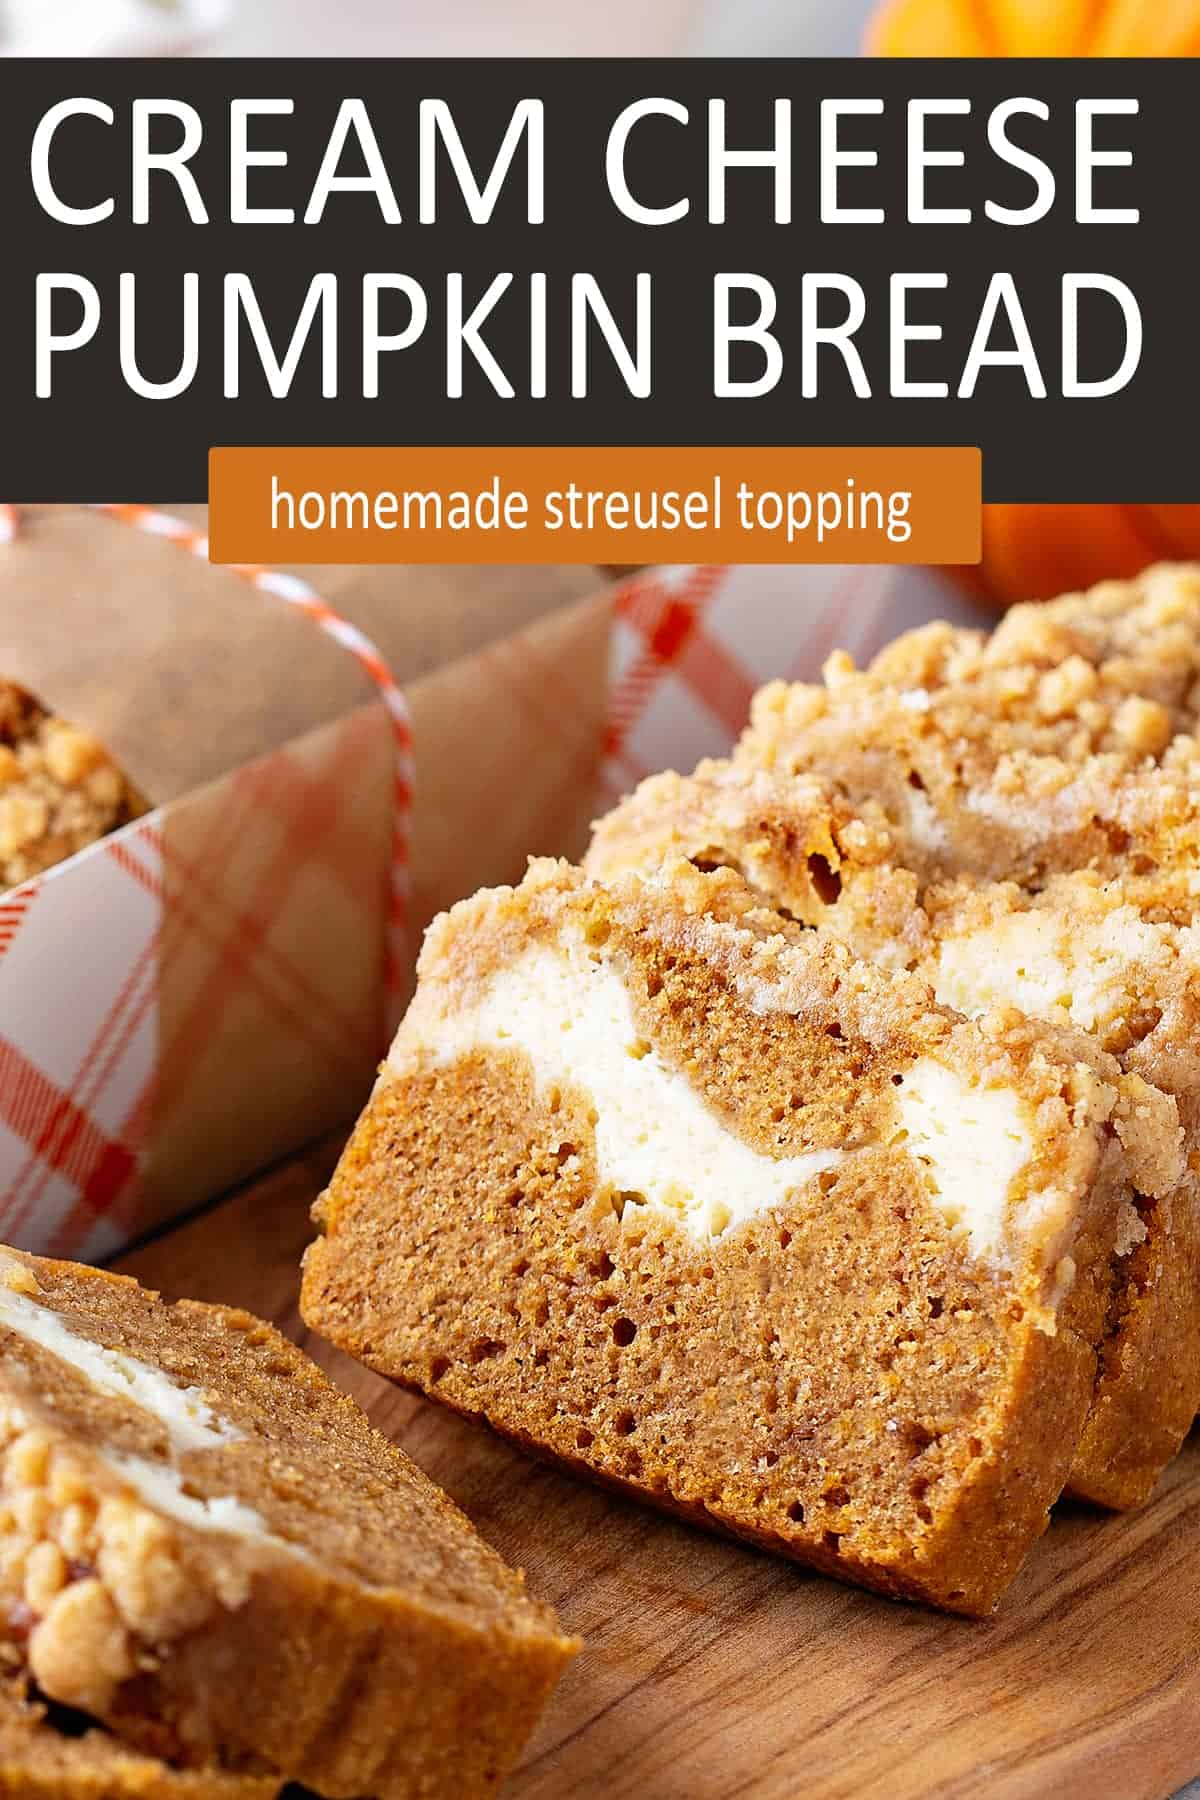 Closeup of Cream Cheese Pumpkin Bread with title